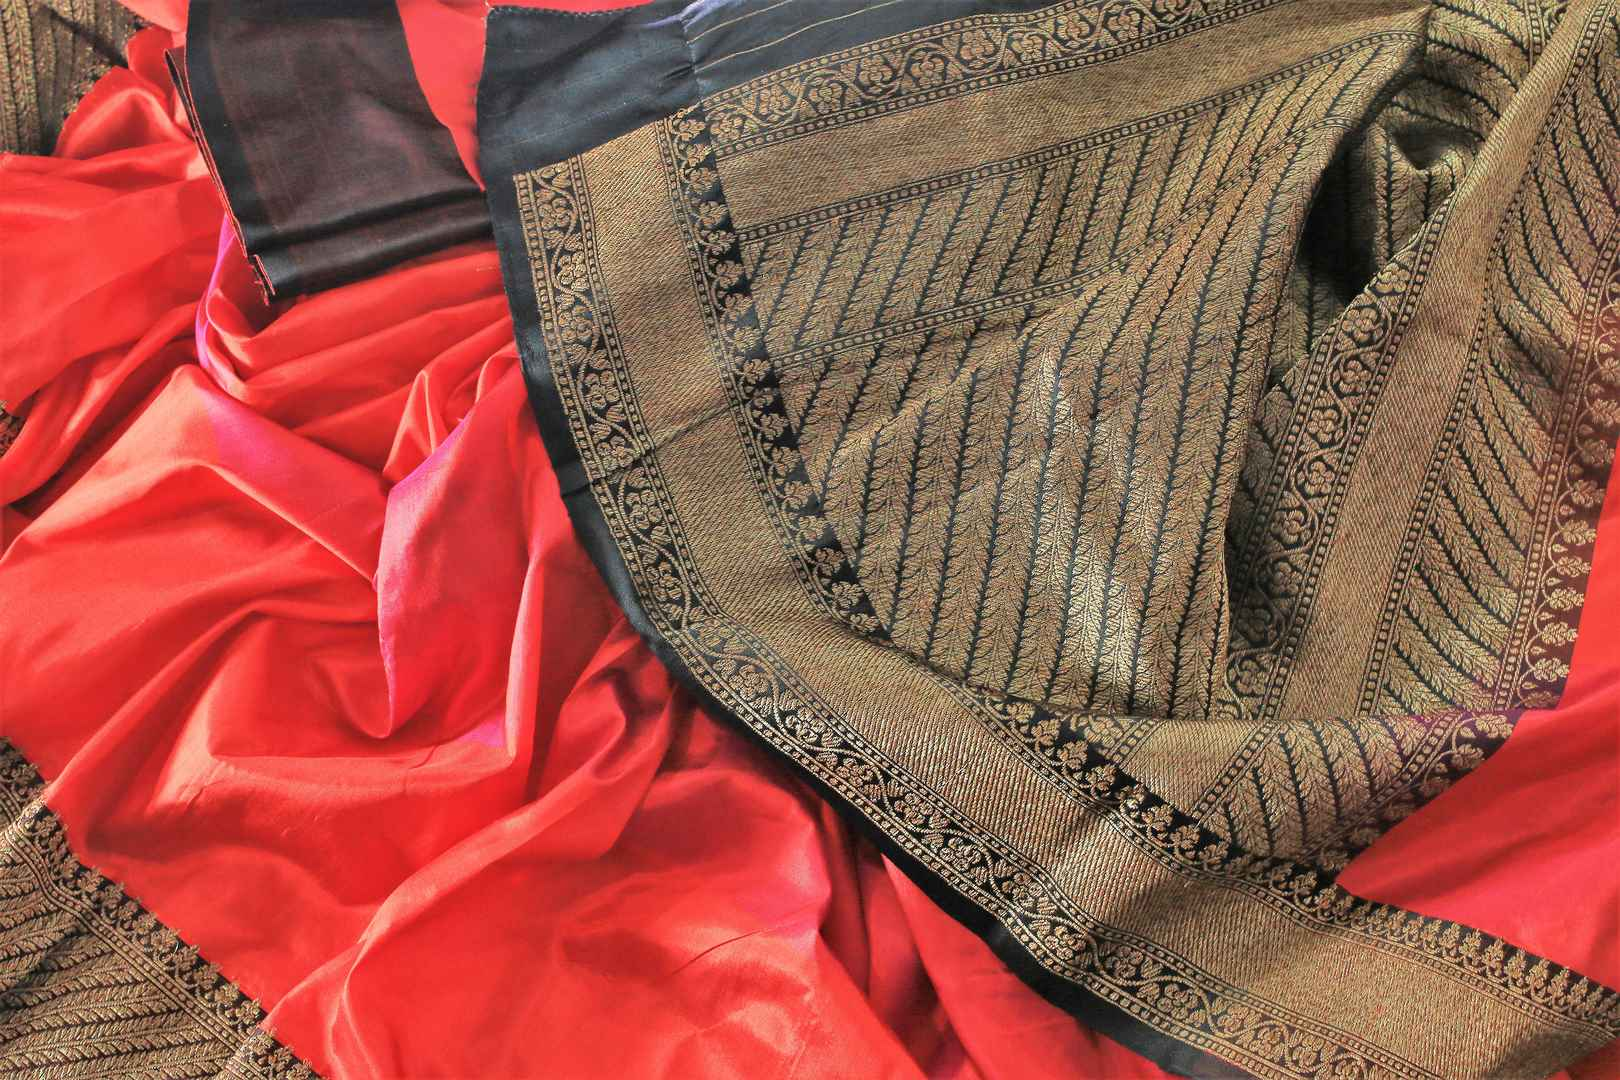 Buy red and black Banarasi silk saree online in USA with embroidered sari blouse. The saree is an alluring choice for a traditional look at weddings and special occasions. Buy more such Indian designer sarees in USA at Pure Elegance exclusive fashion store or shop online at the comfort of your home.-details